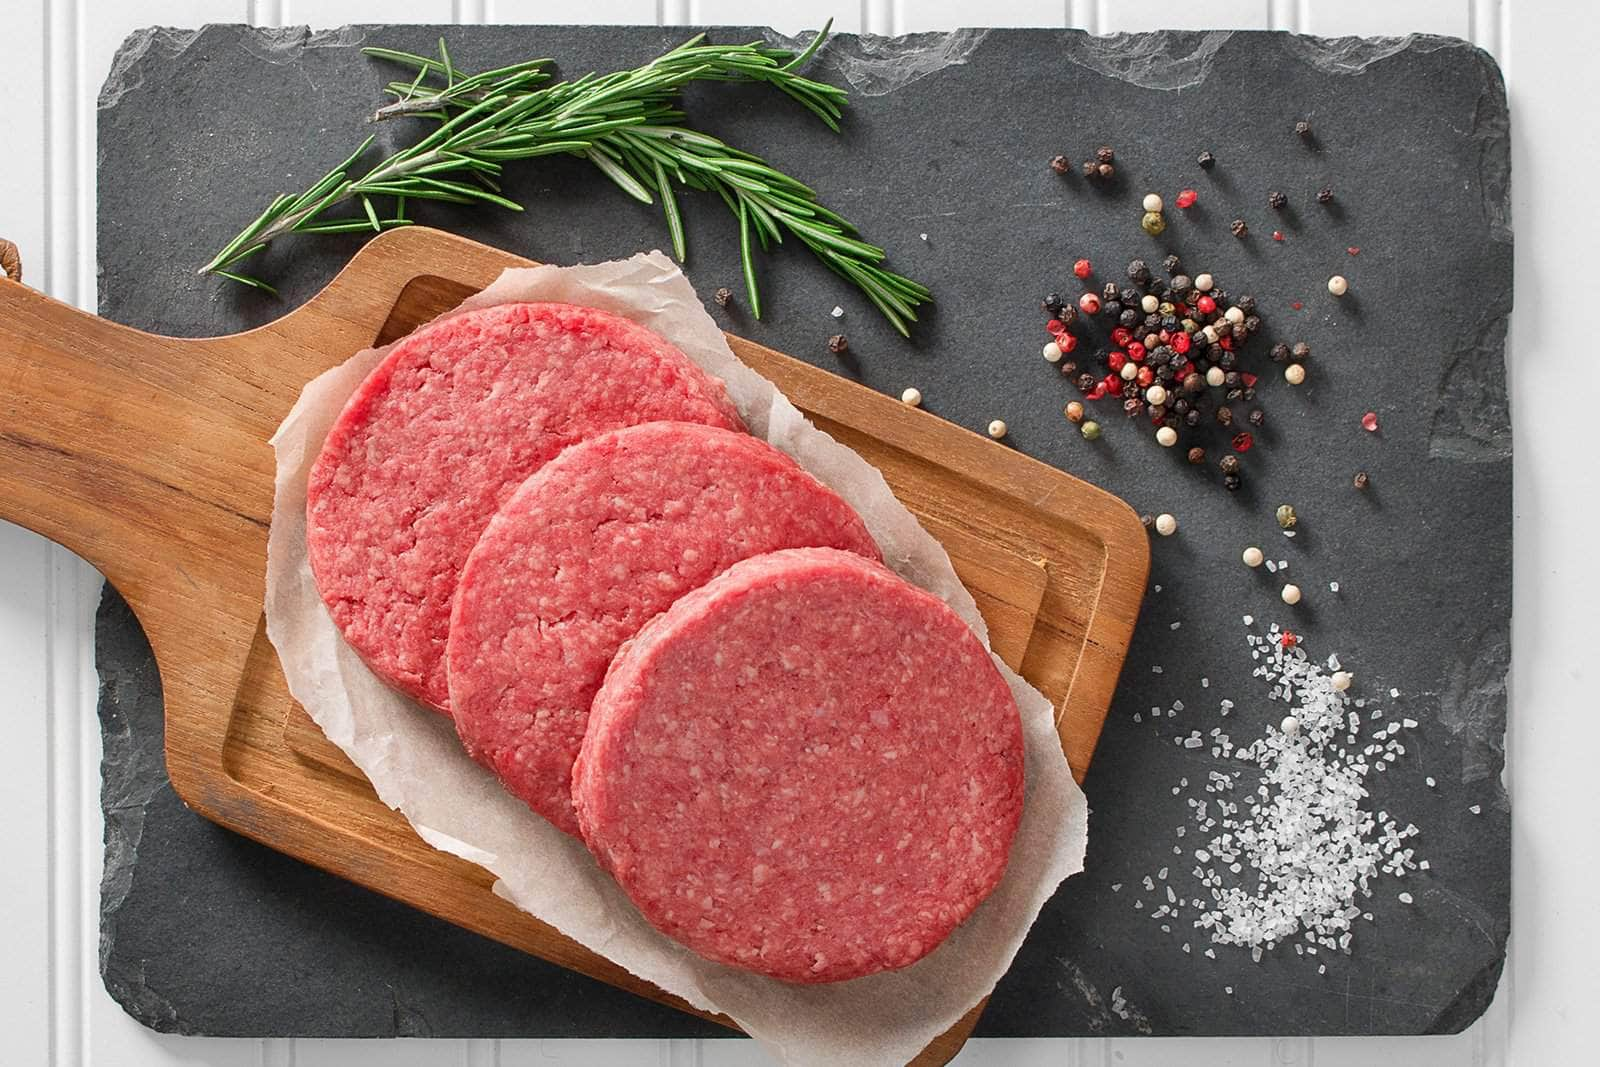 Grassfed Beef Patties 1/3 lb - 1 lb package - Local Food to Your Doorstep